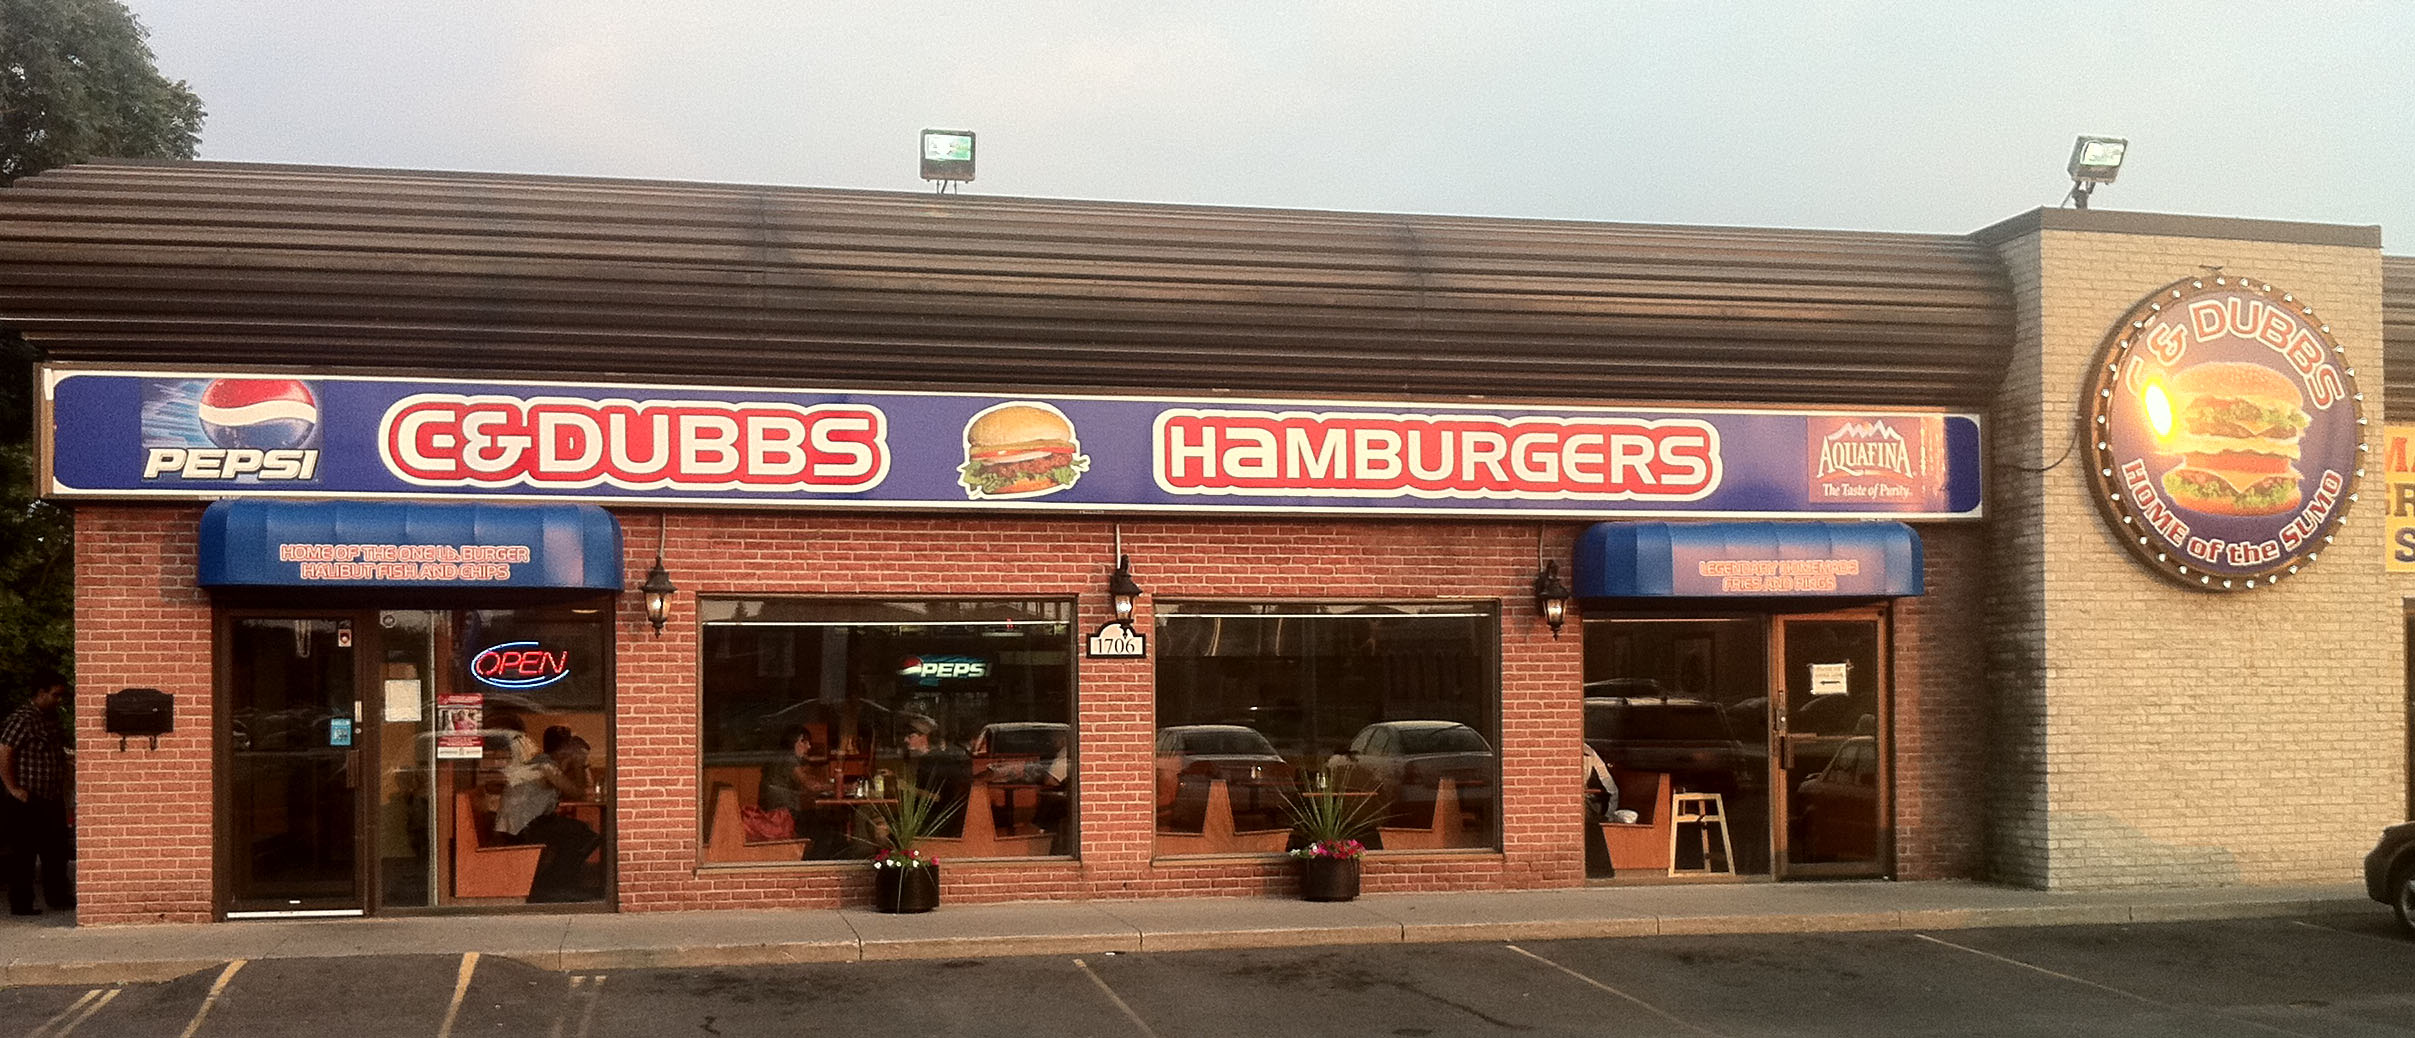 1425 Dundas St E Mississauga C And Dubbs Hamburgers Toronto 39s Best Burger